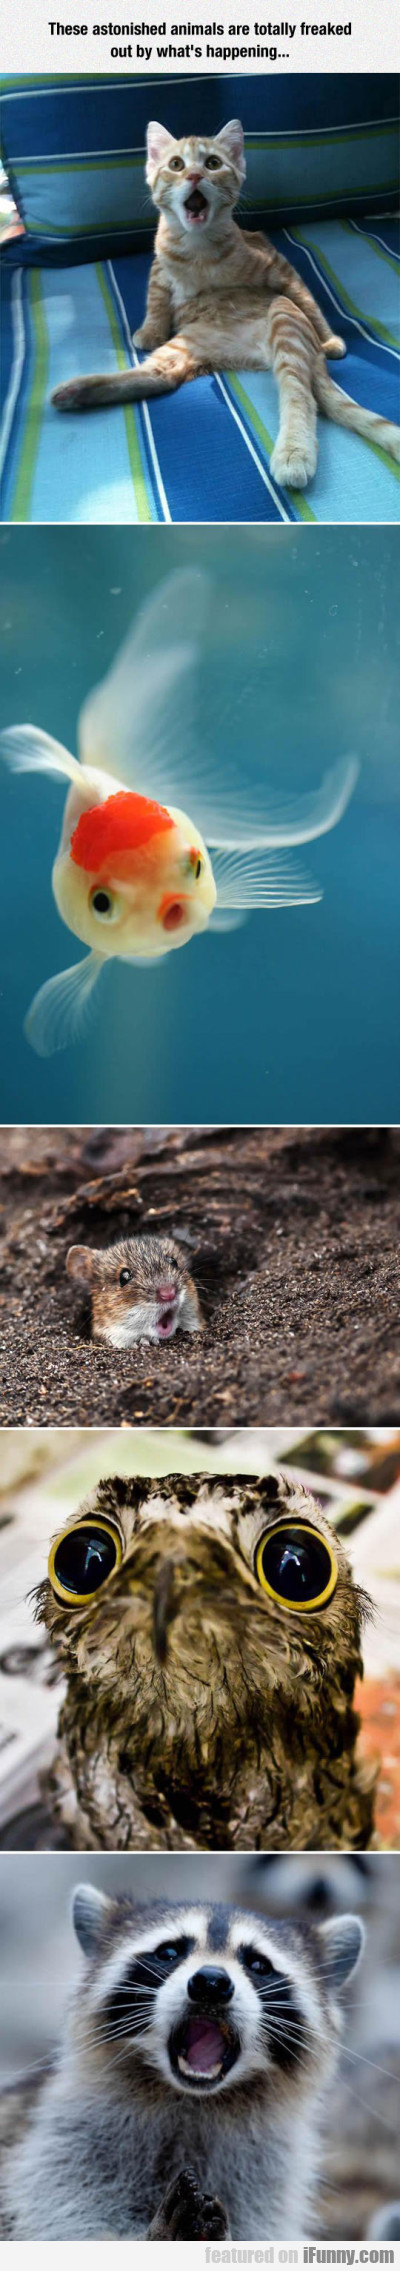 These Astonished Animals Are Totally Freaked